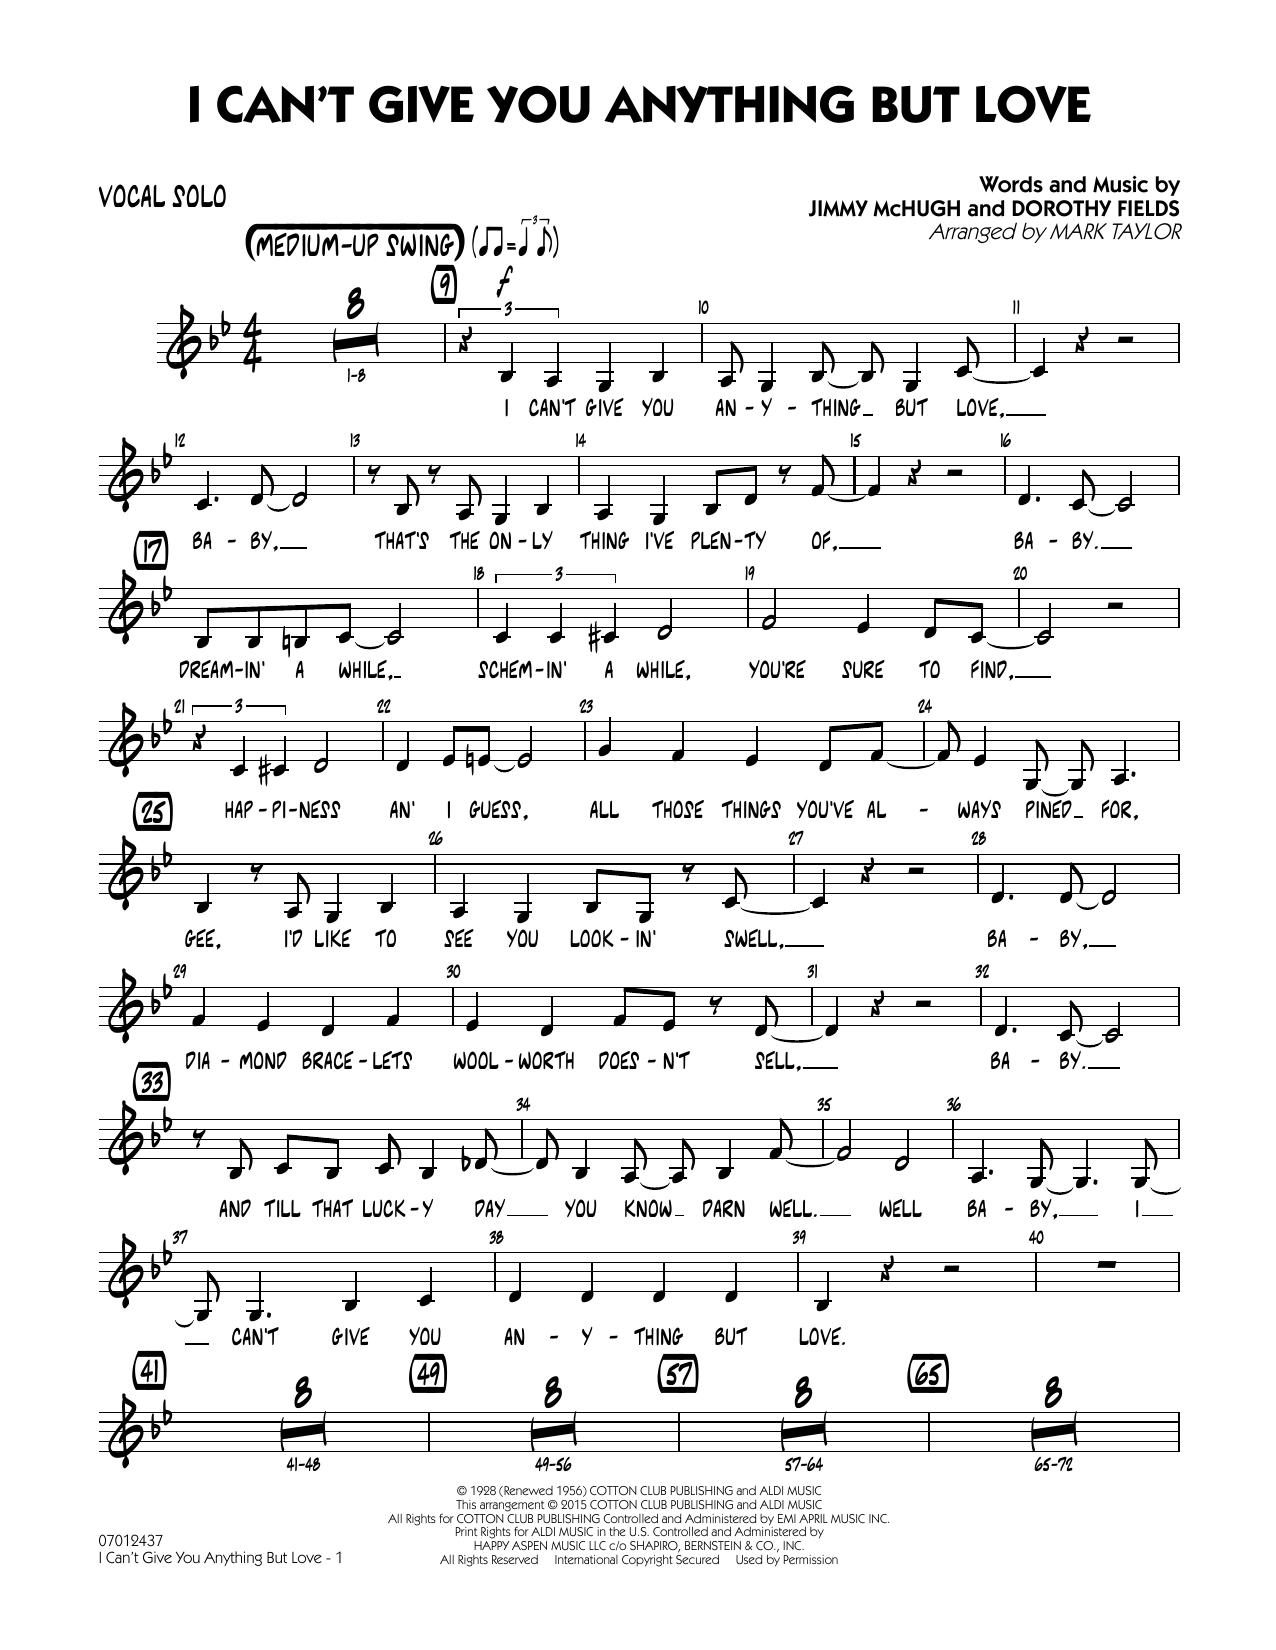 Mark Taylor 'I Can't Give You Anything But Love Key B flat   Vocal Solo'  Sheet Music Notes, Chords   Download Printable Jazz Ensemble   SKU 15